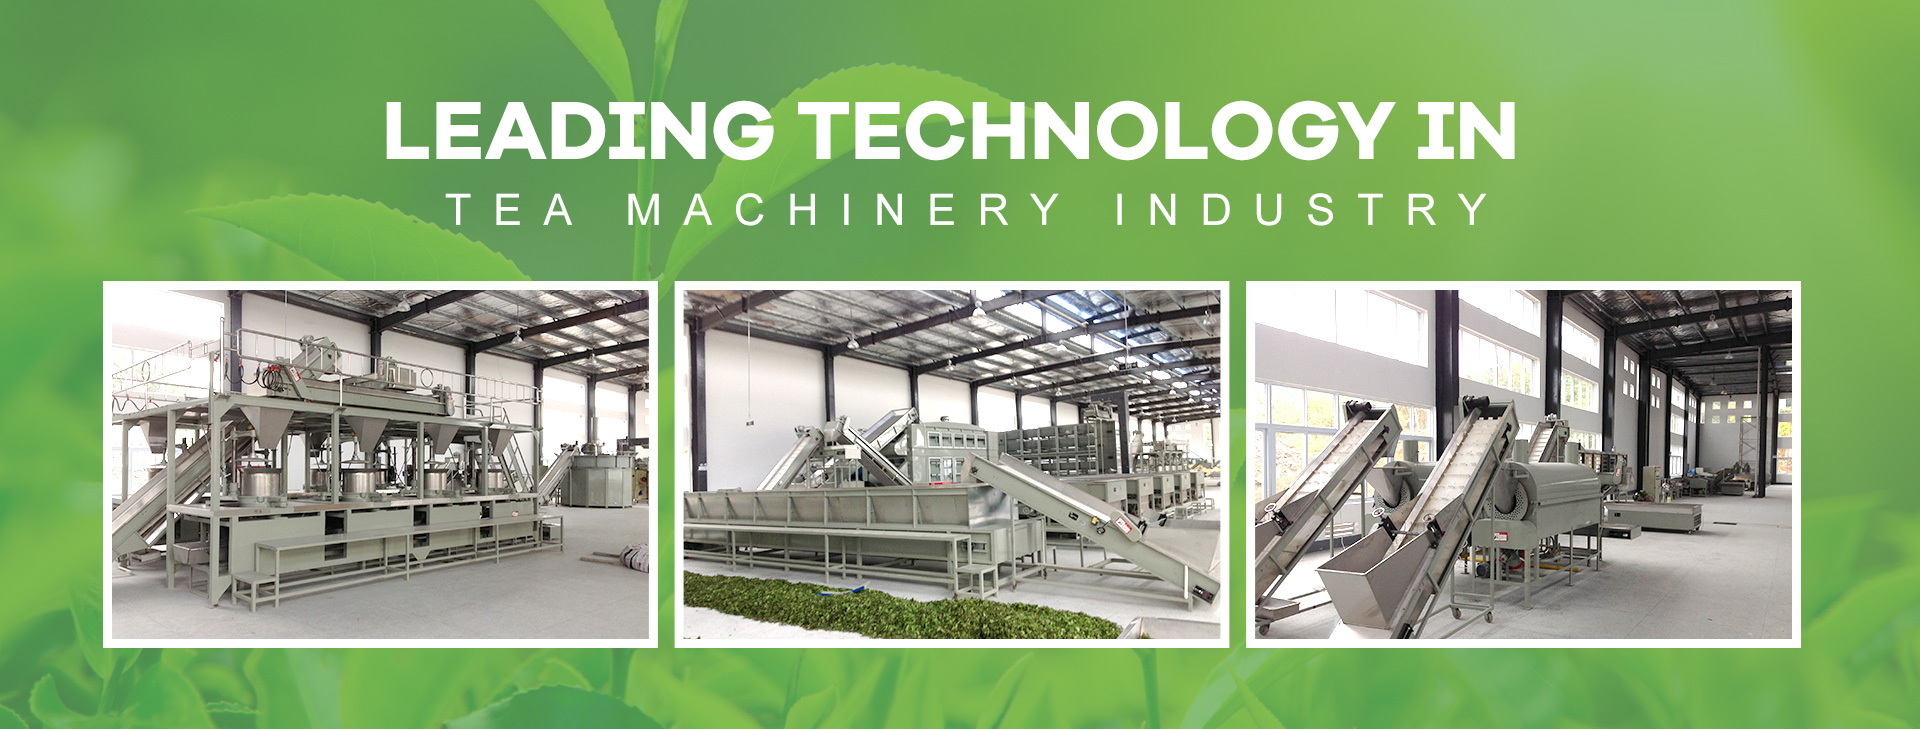 Leading technology yn tee machinery yndustry